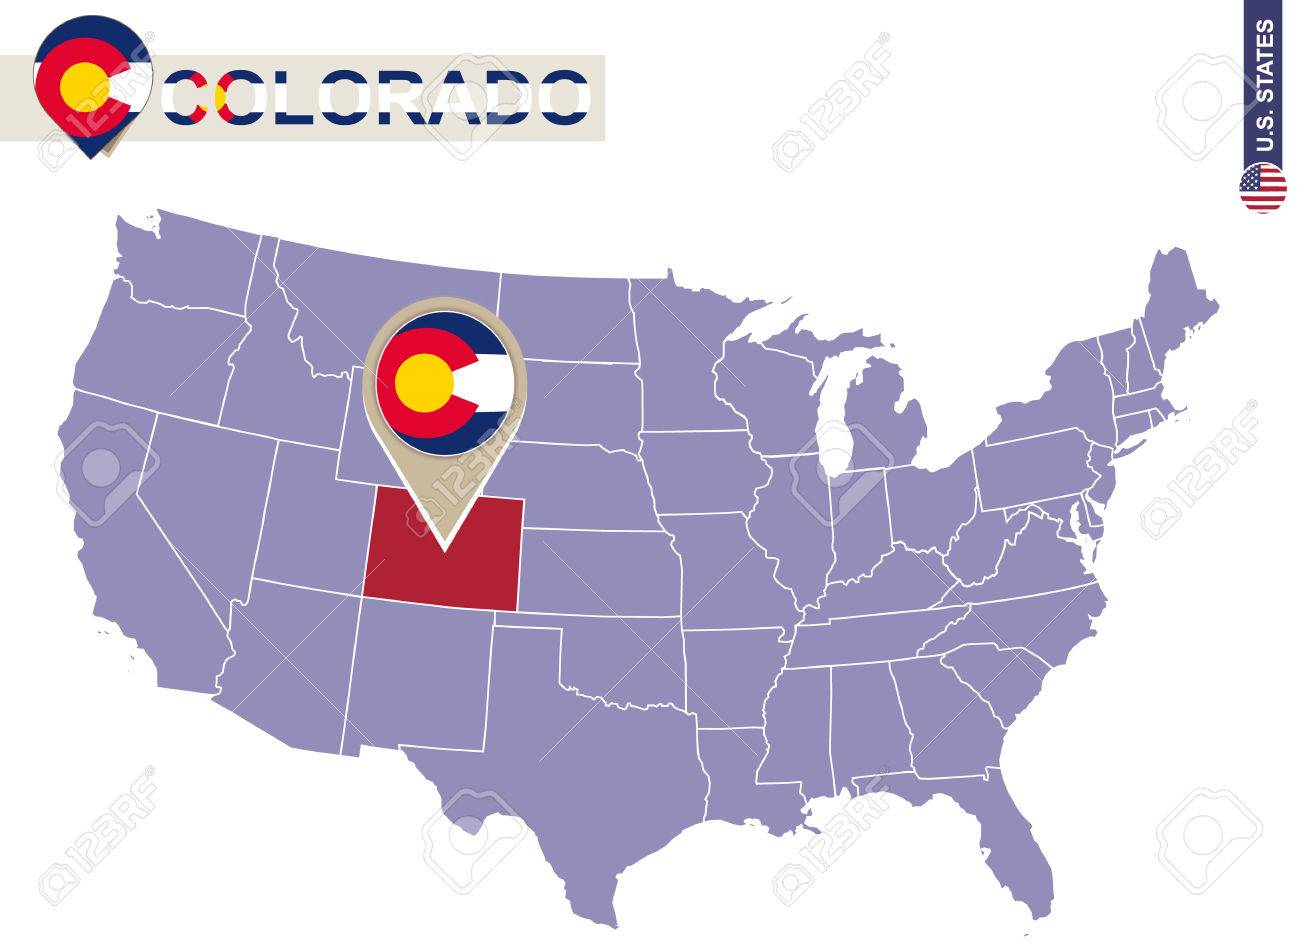 Colorado State On USA Map Colorado Flag And Map US States - Colorado on a us map